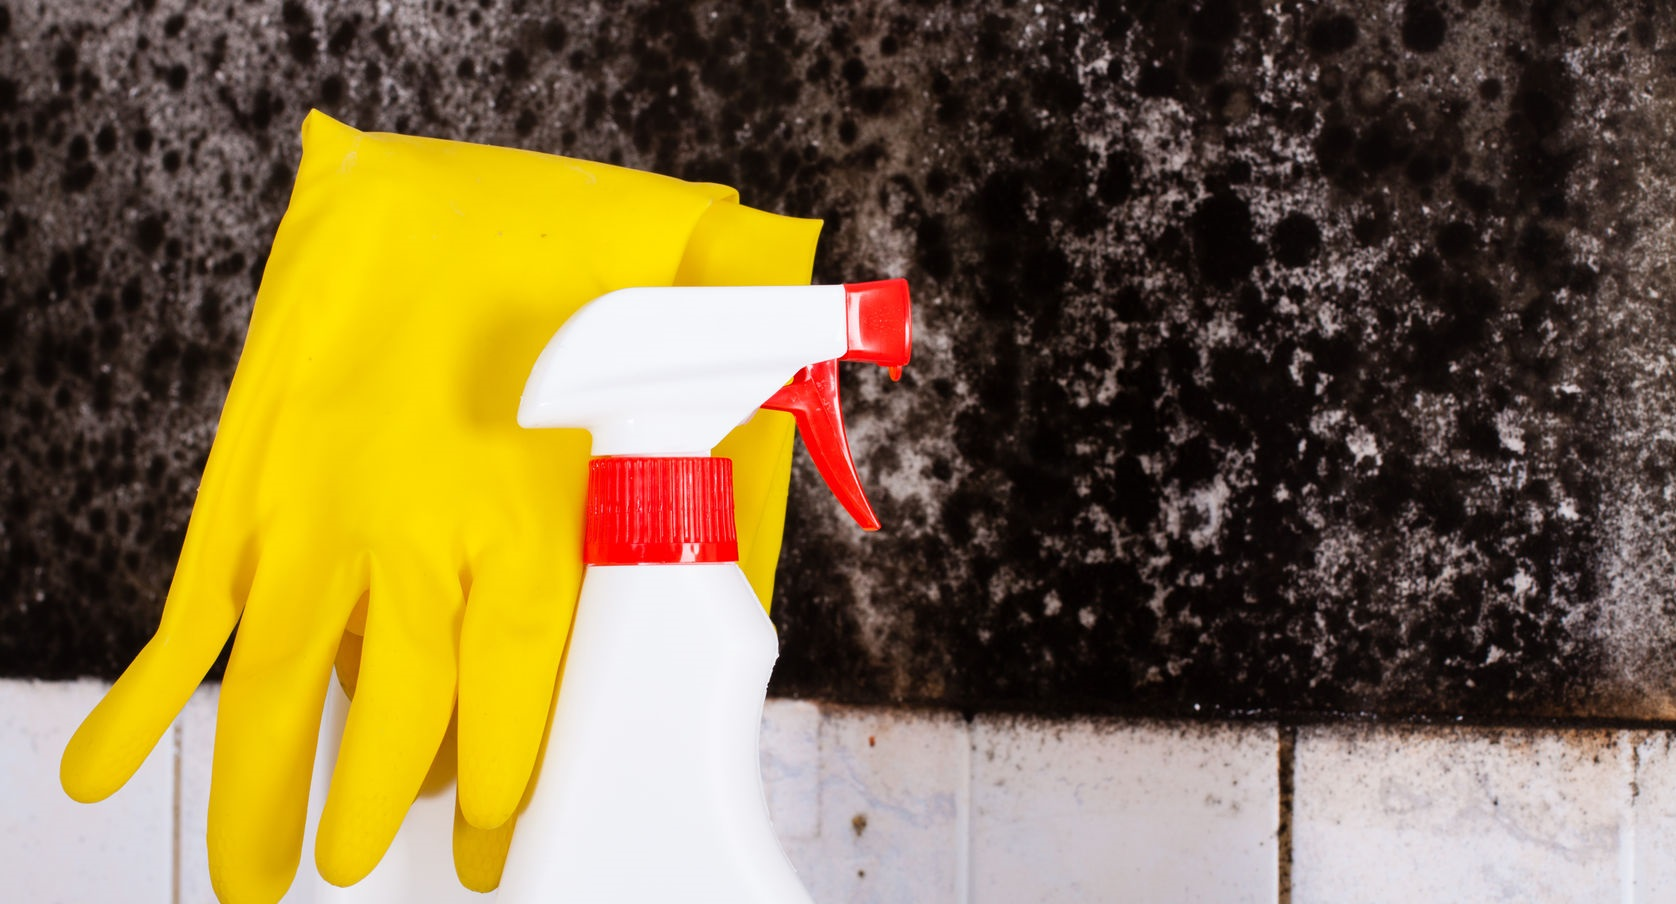 preparation for the removal of mold and yellow gloves against the mold on wall.